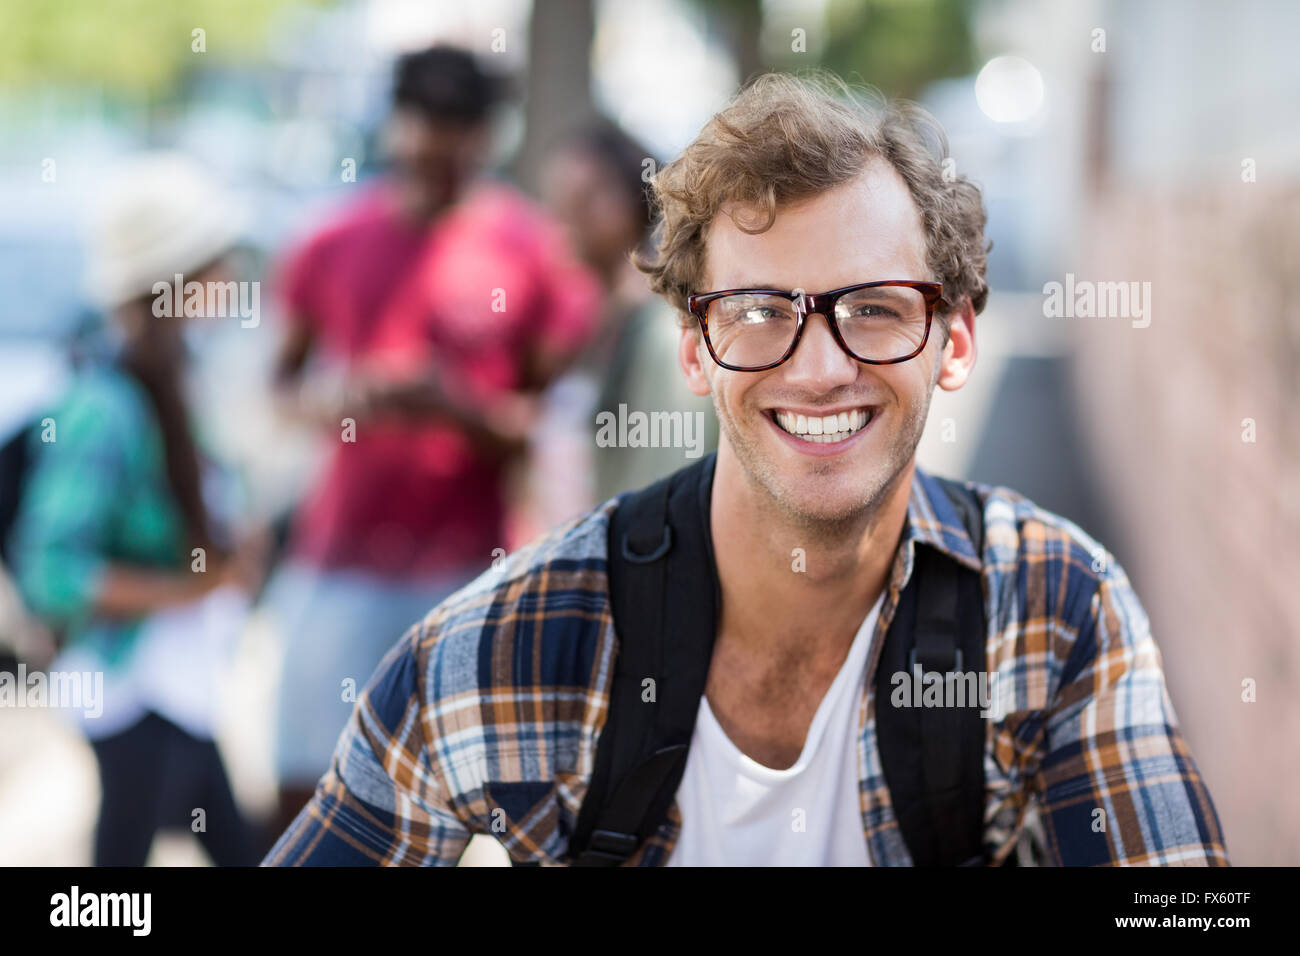 Portrait of young man smiling Photo Stock